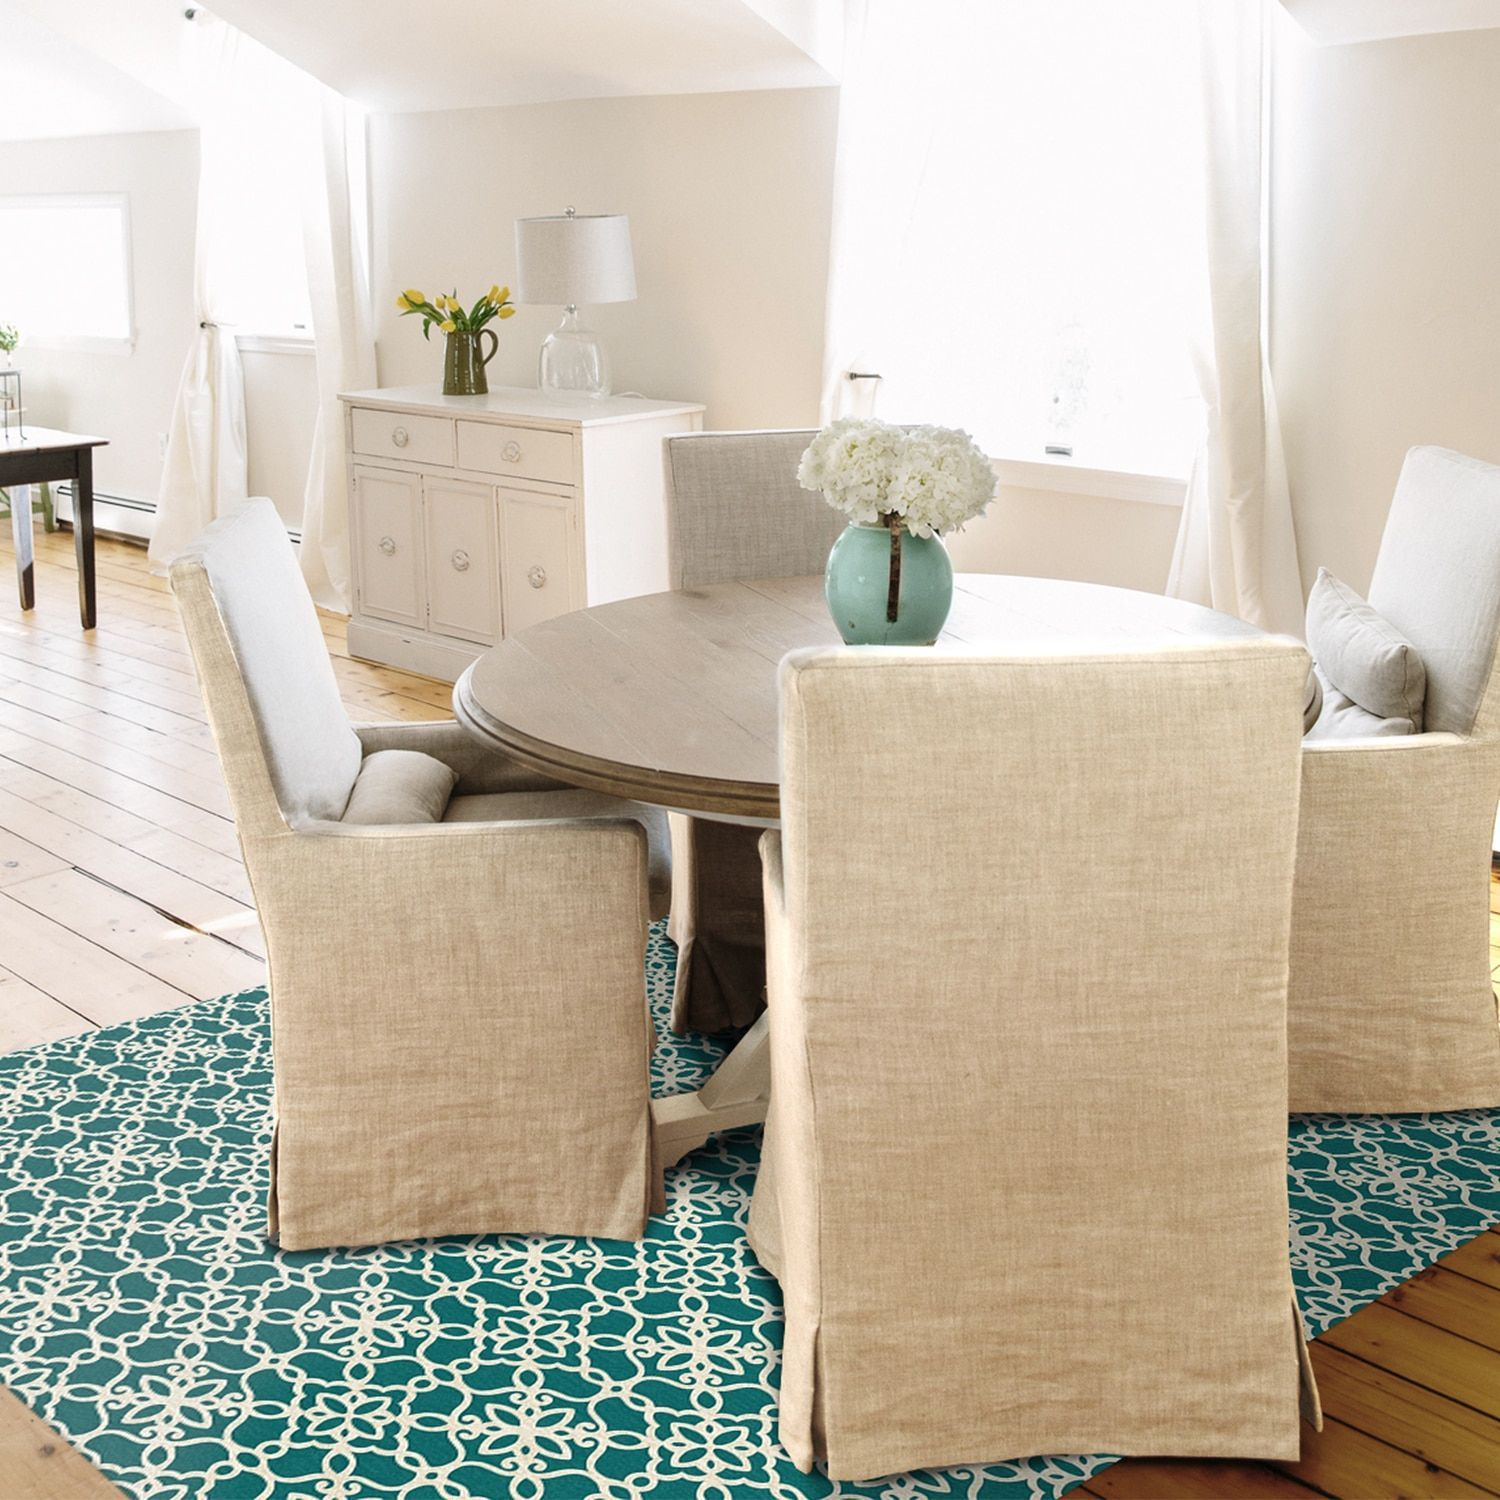 Dog Proof Throw Rugs: RUGGABLE Washable Indoor/ Outdoor Floral Tiles Teal And